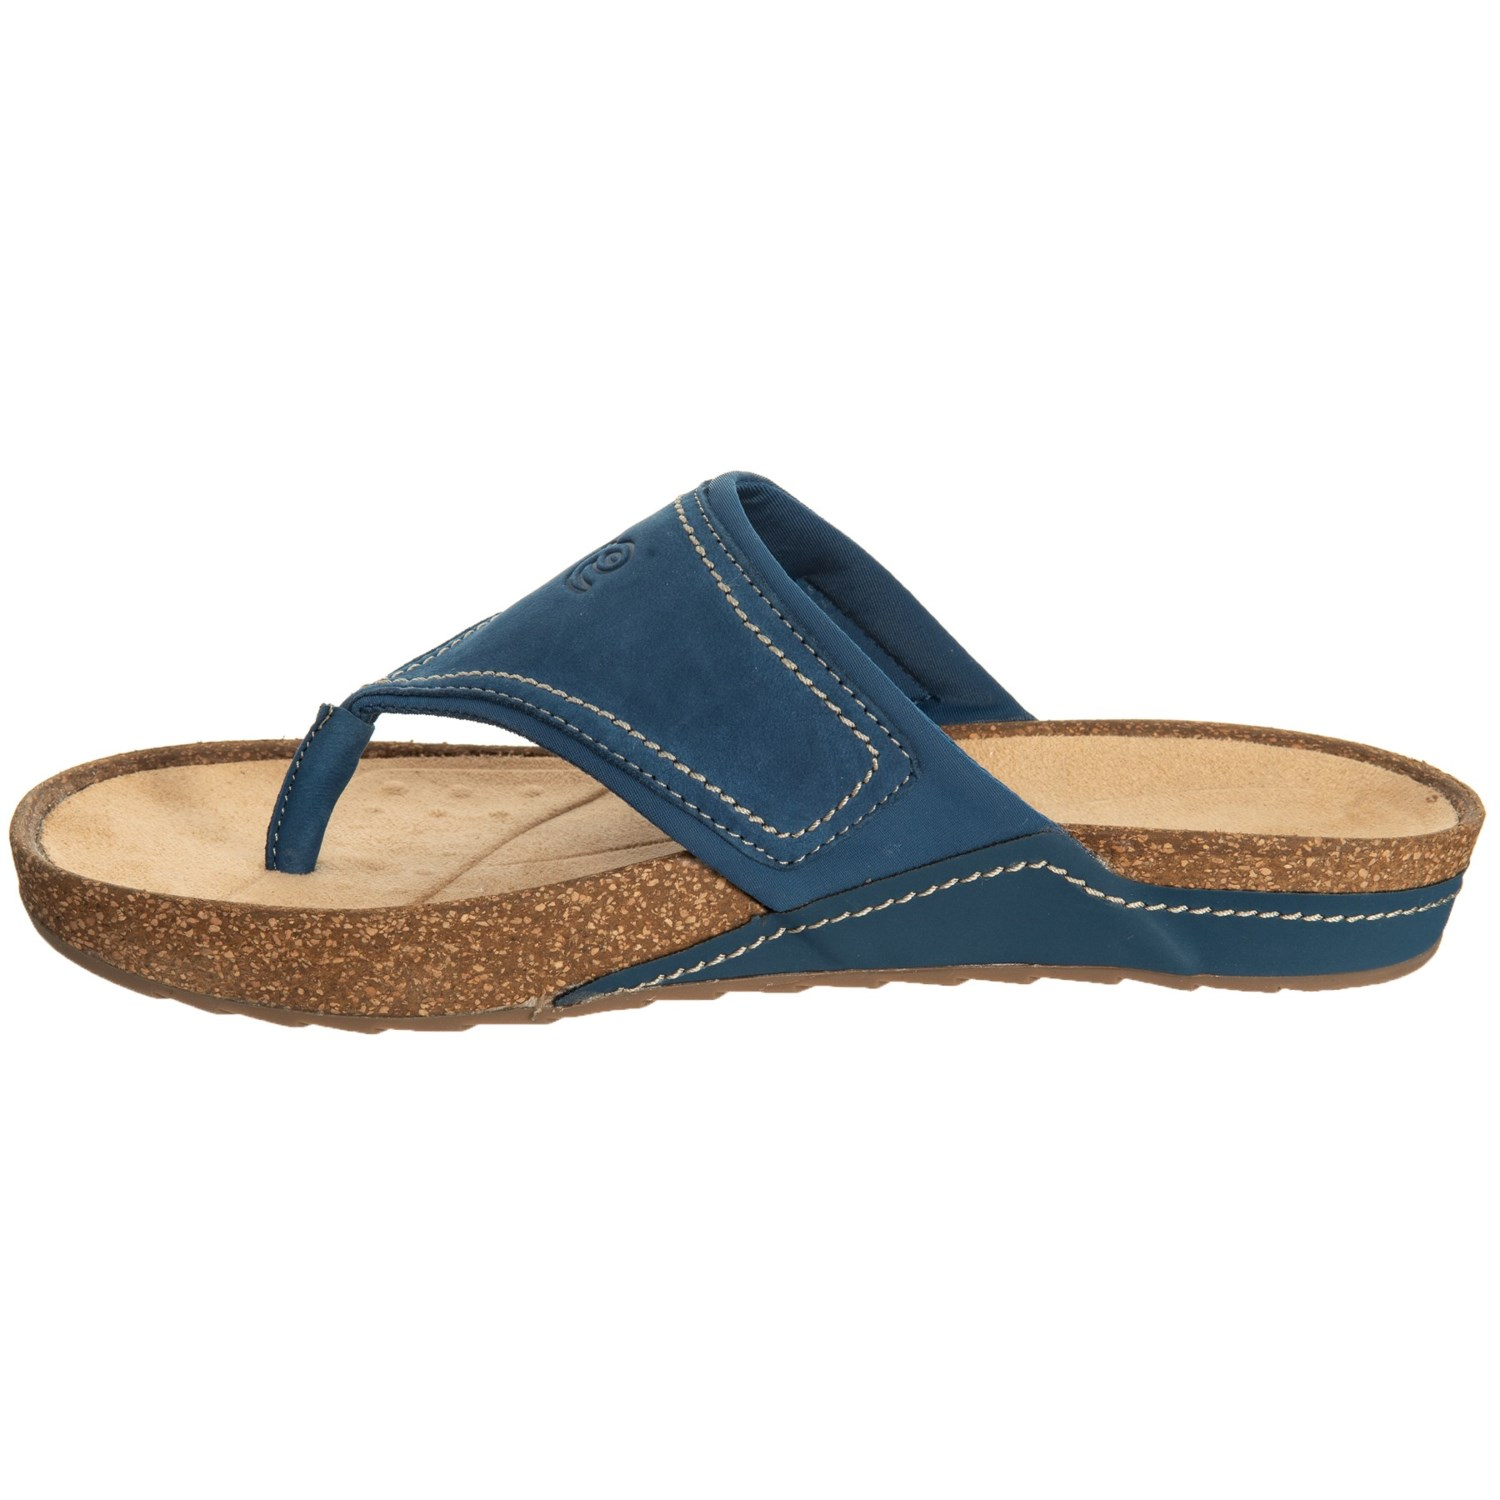 596c36860d60 Easy Spirit Peony Sandals (For Women) - Save 28%